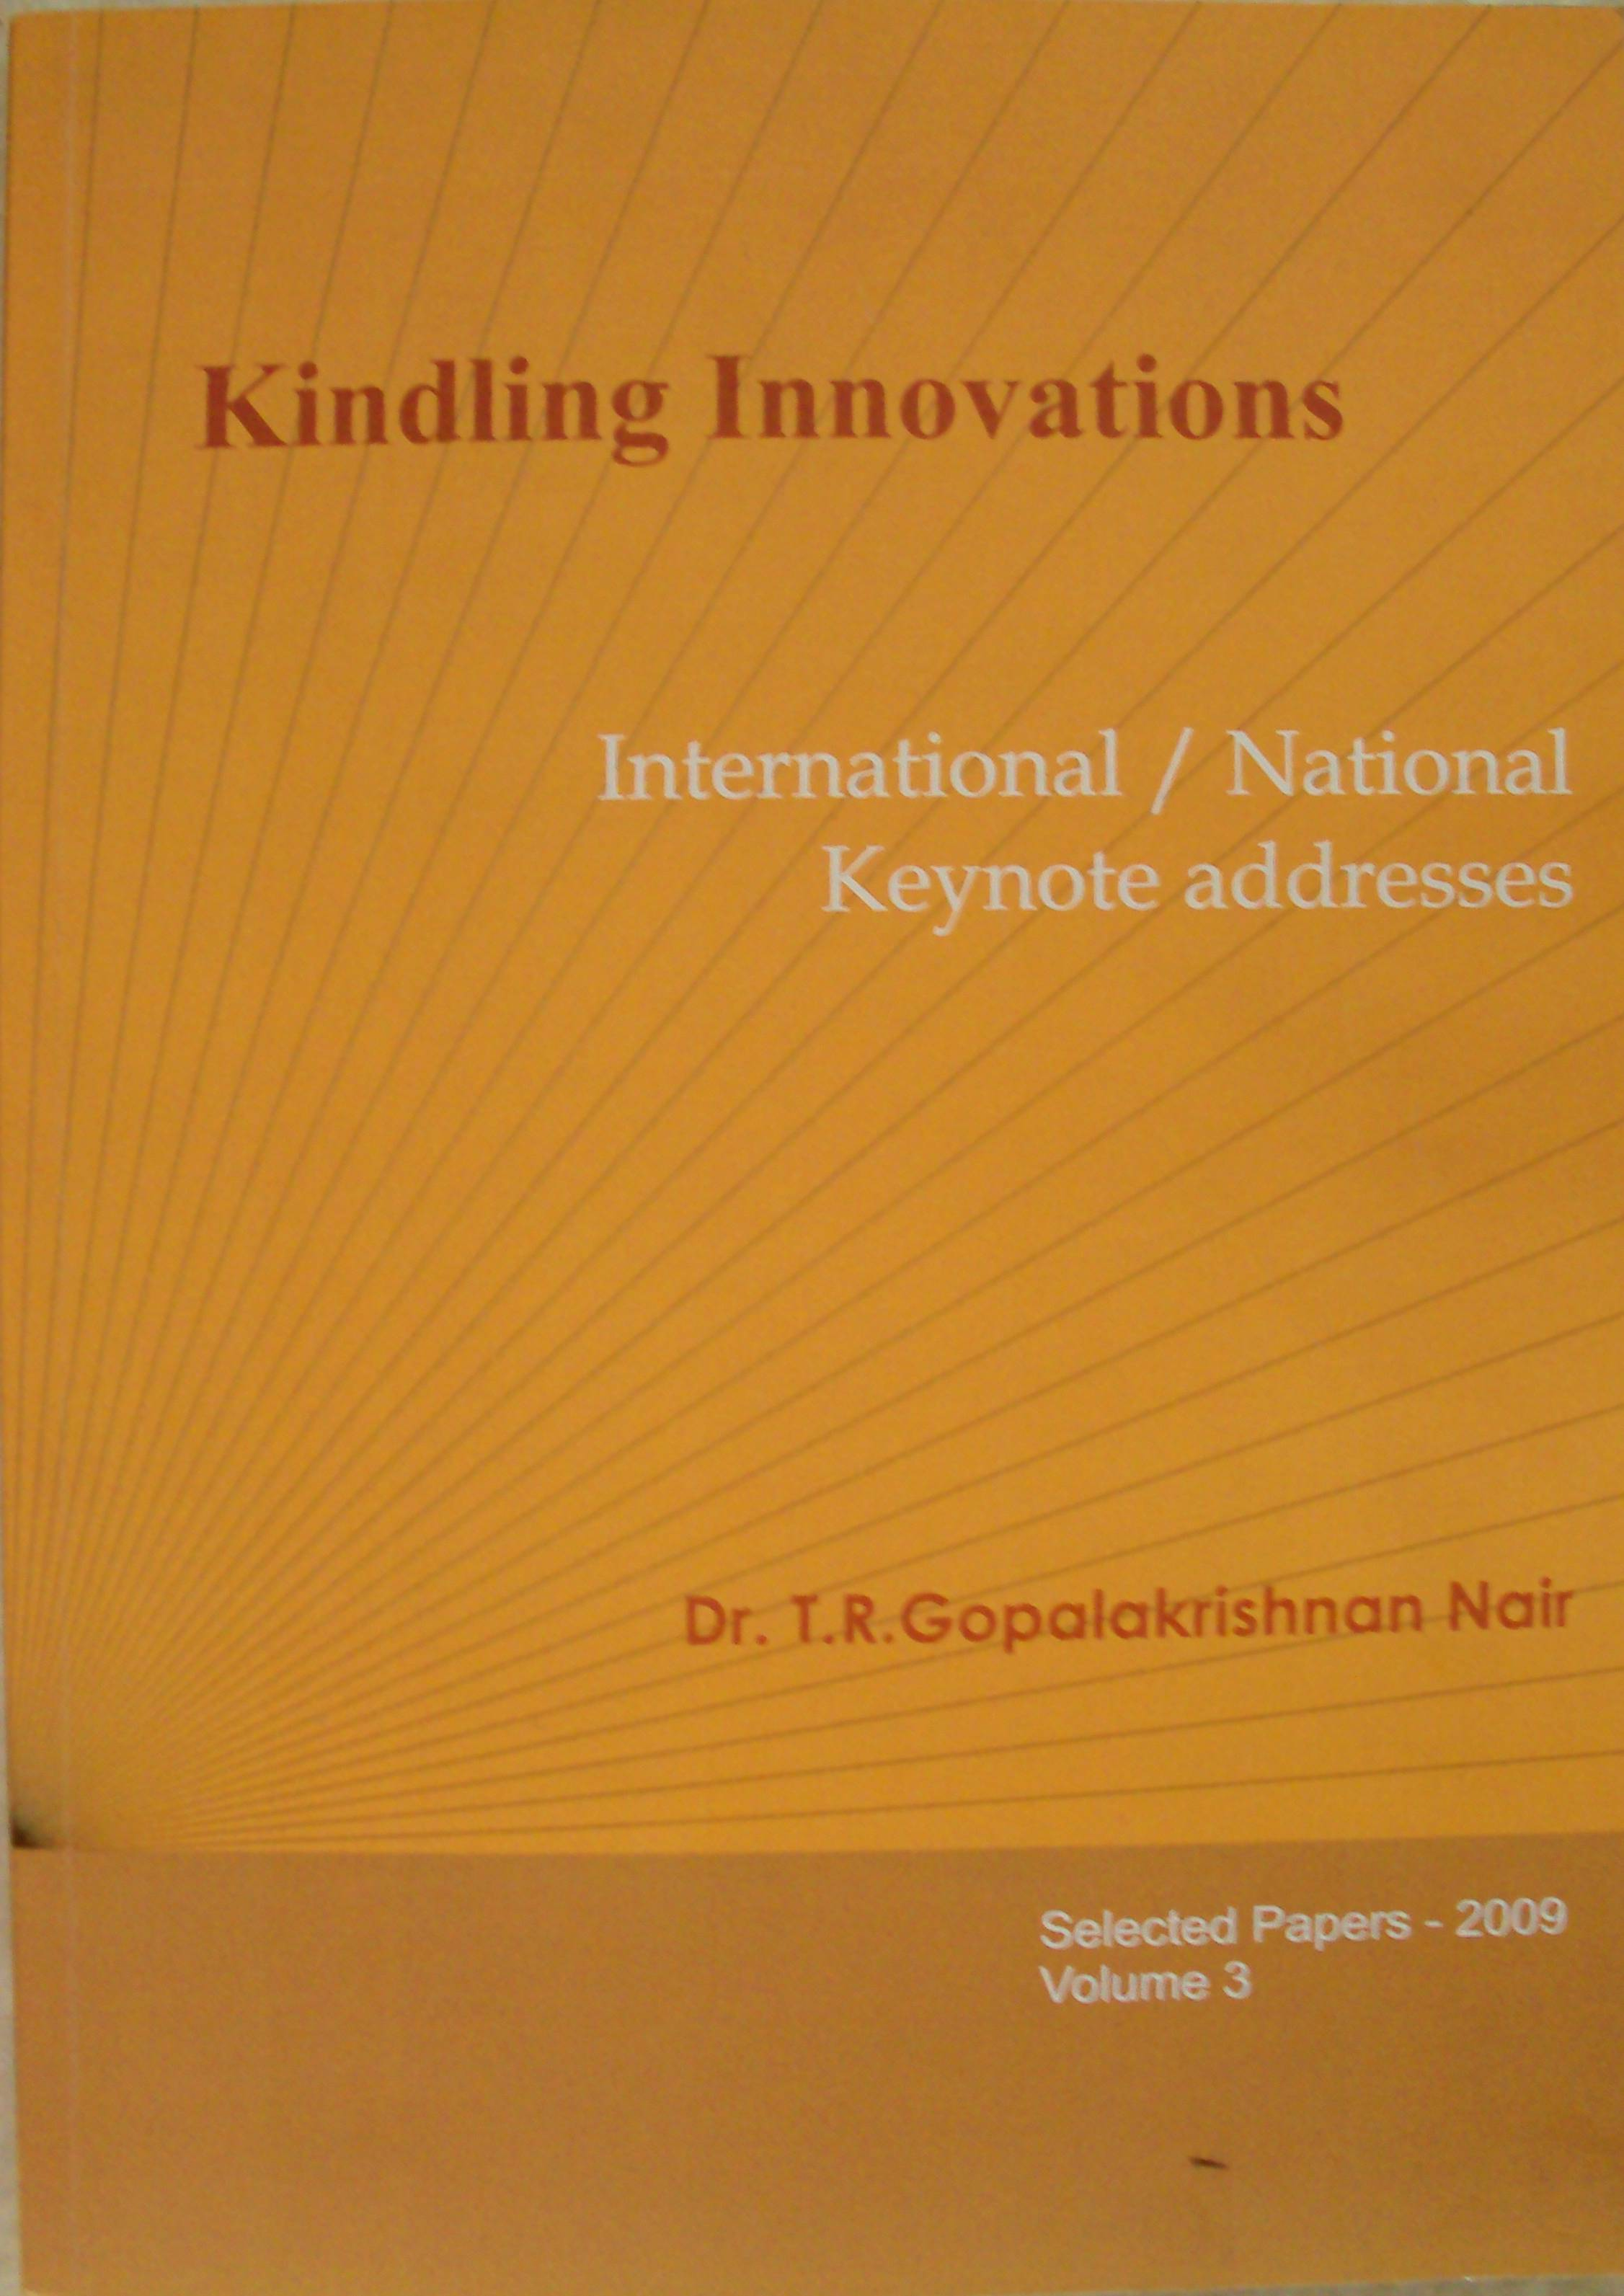 Keynotes, Kindling Innovations Vol.1